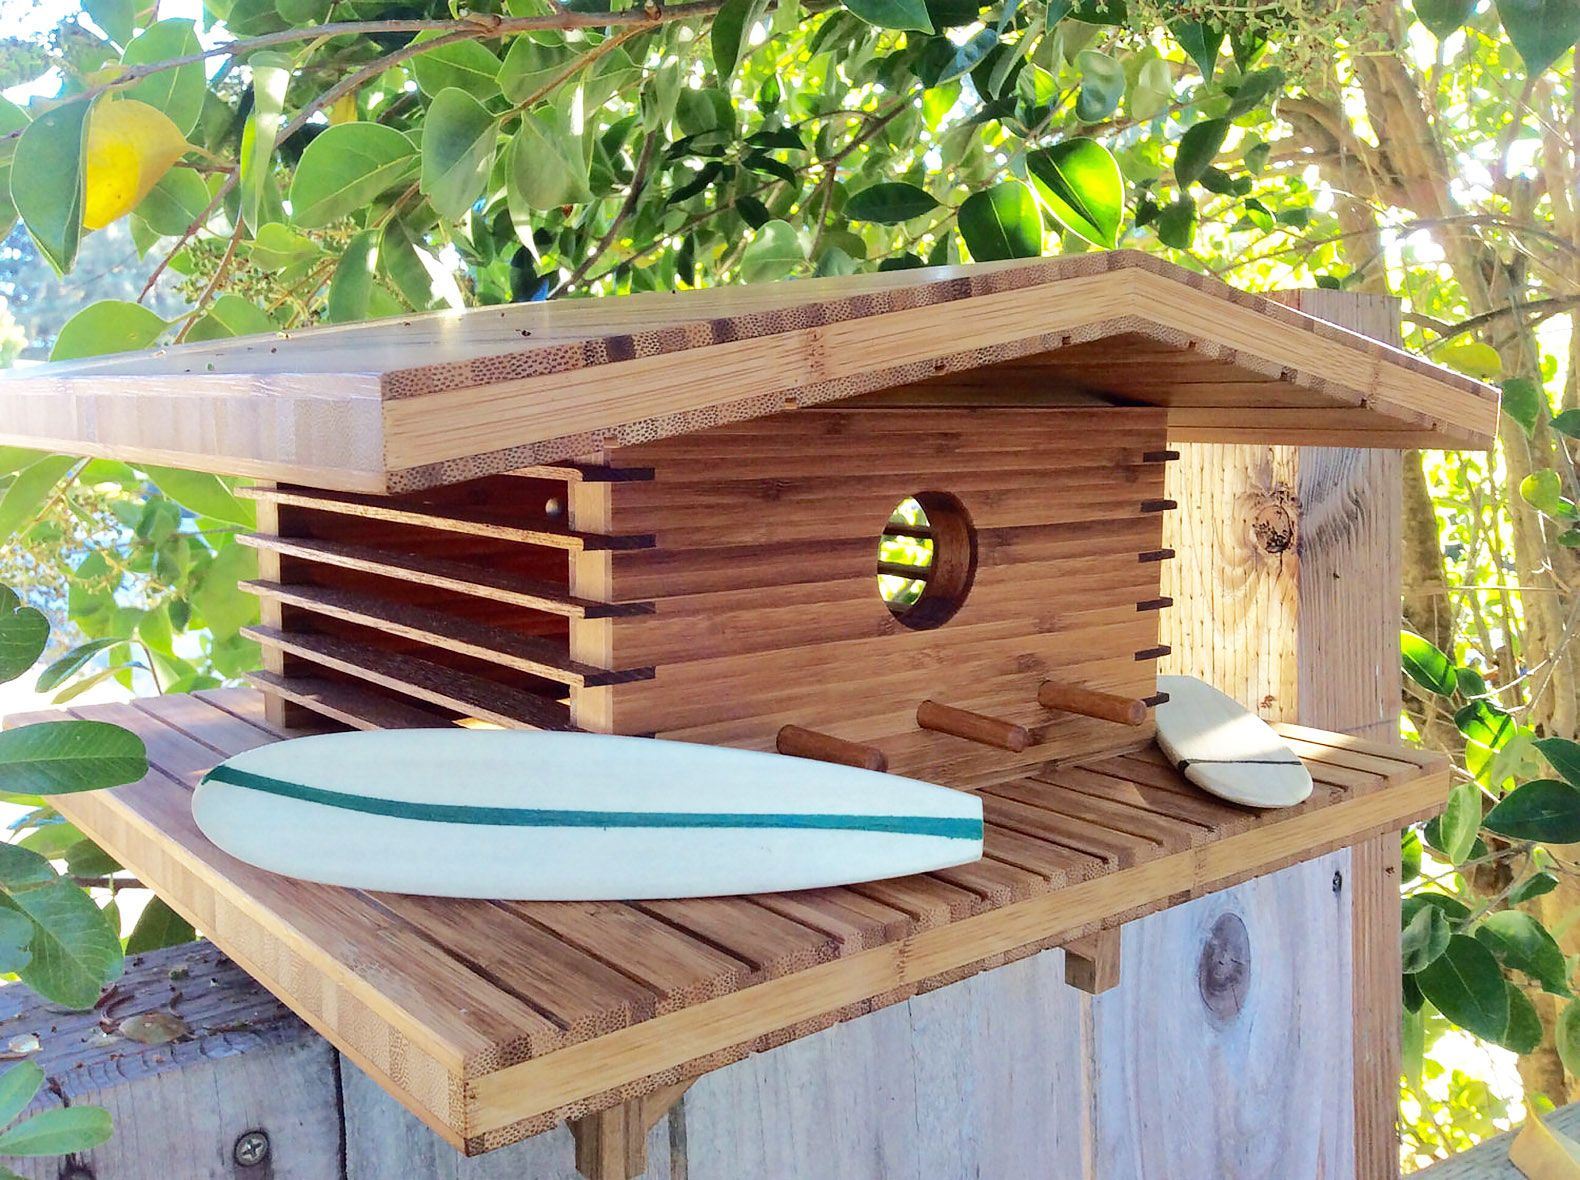 Enchanting birdhouses inspired by famous architecture Modern